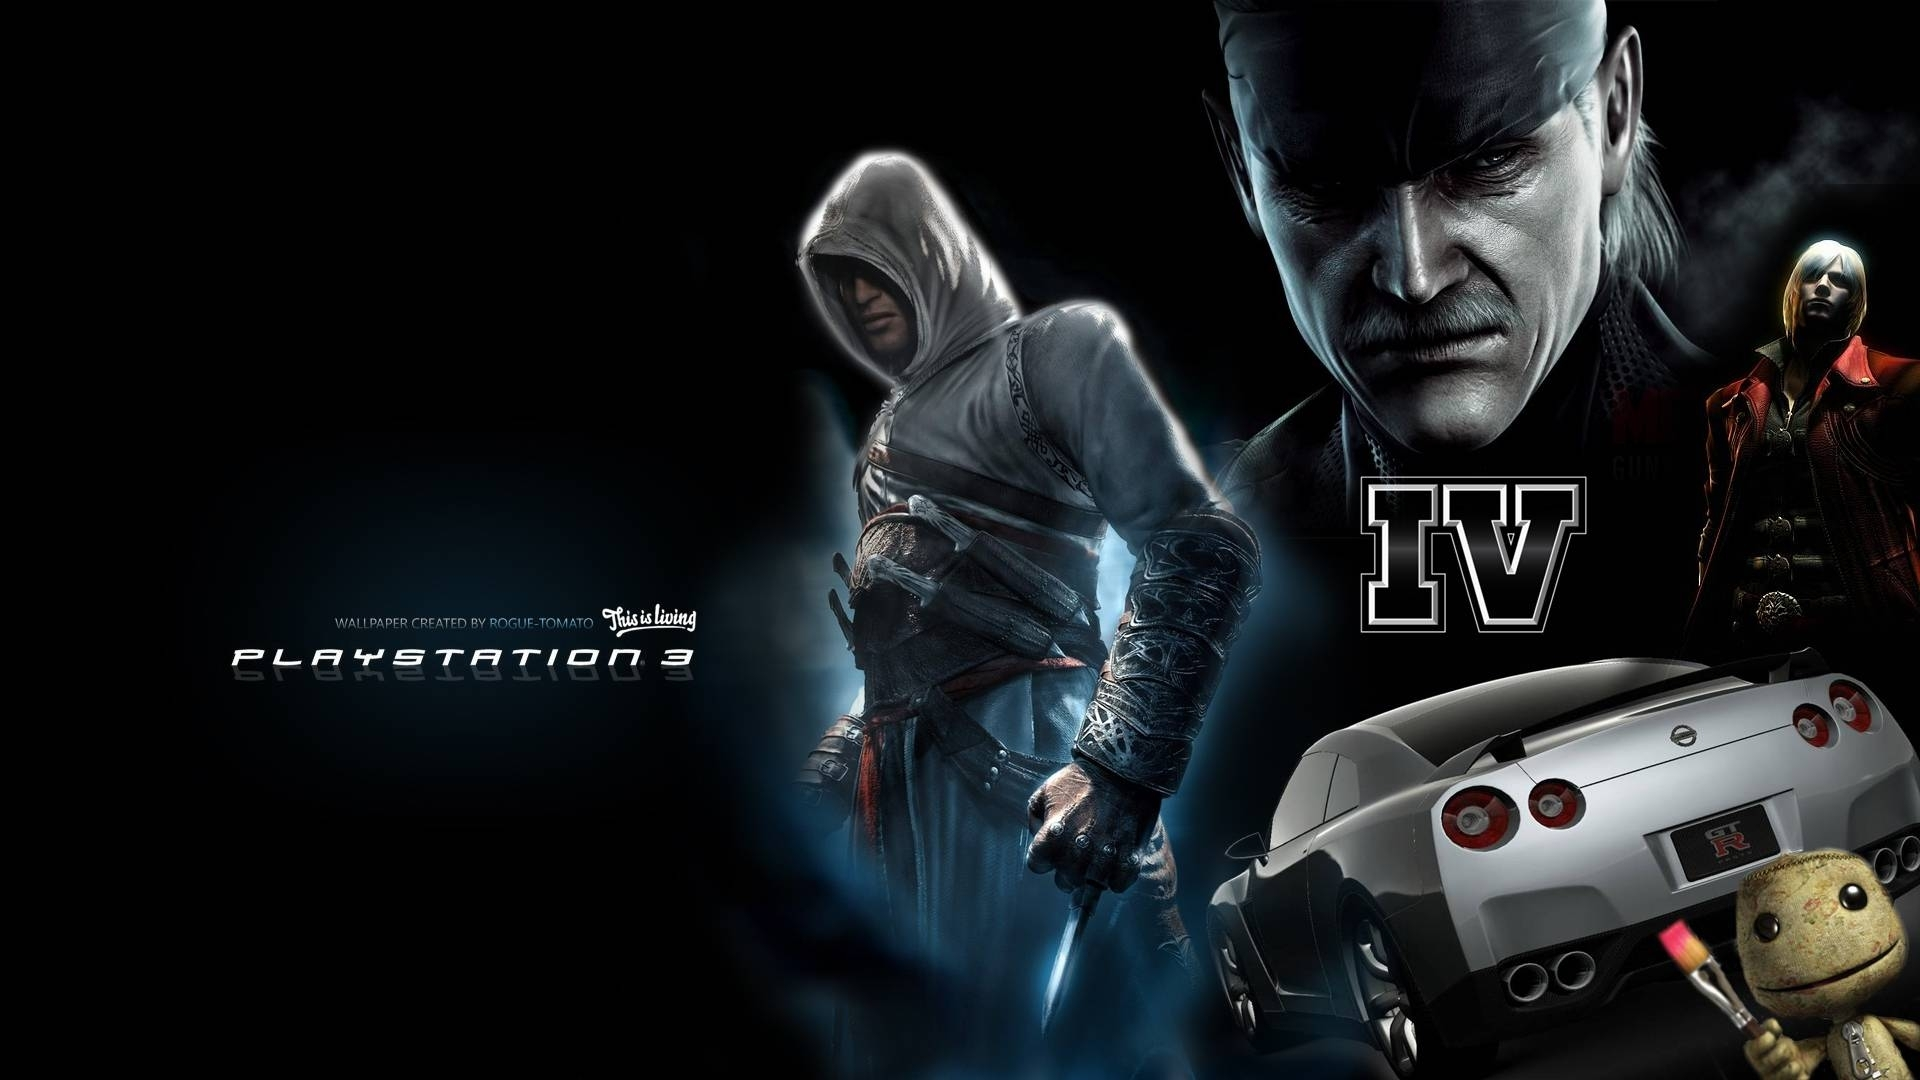 10 New Wallpaper For Ps3 Download FULL HD 1080p For PC Background